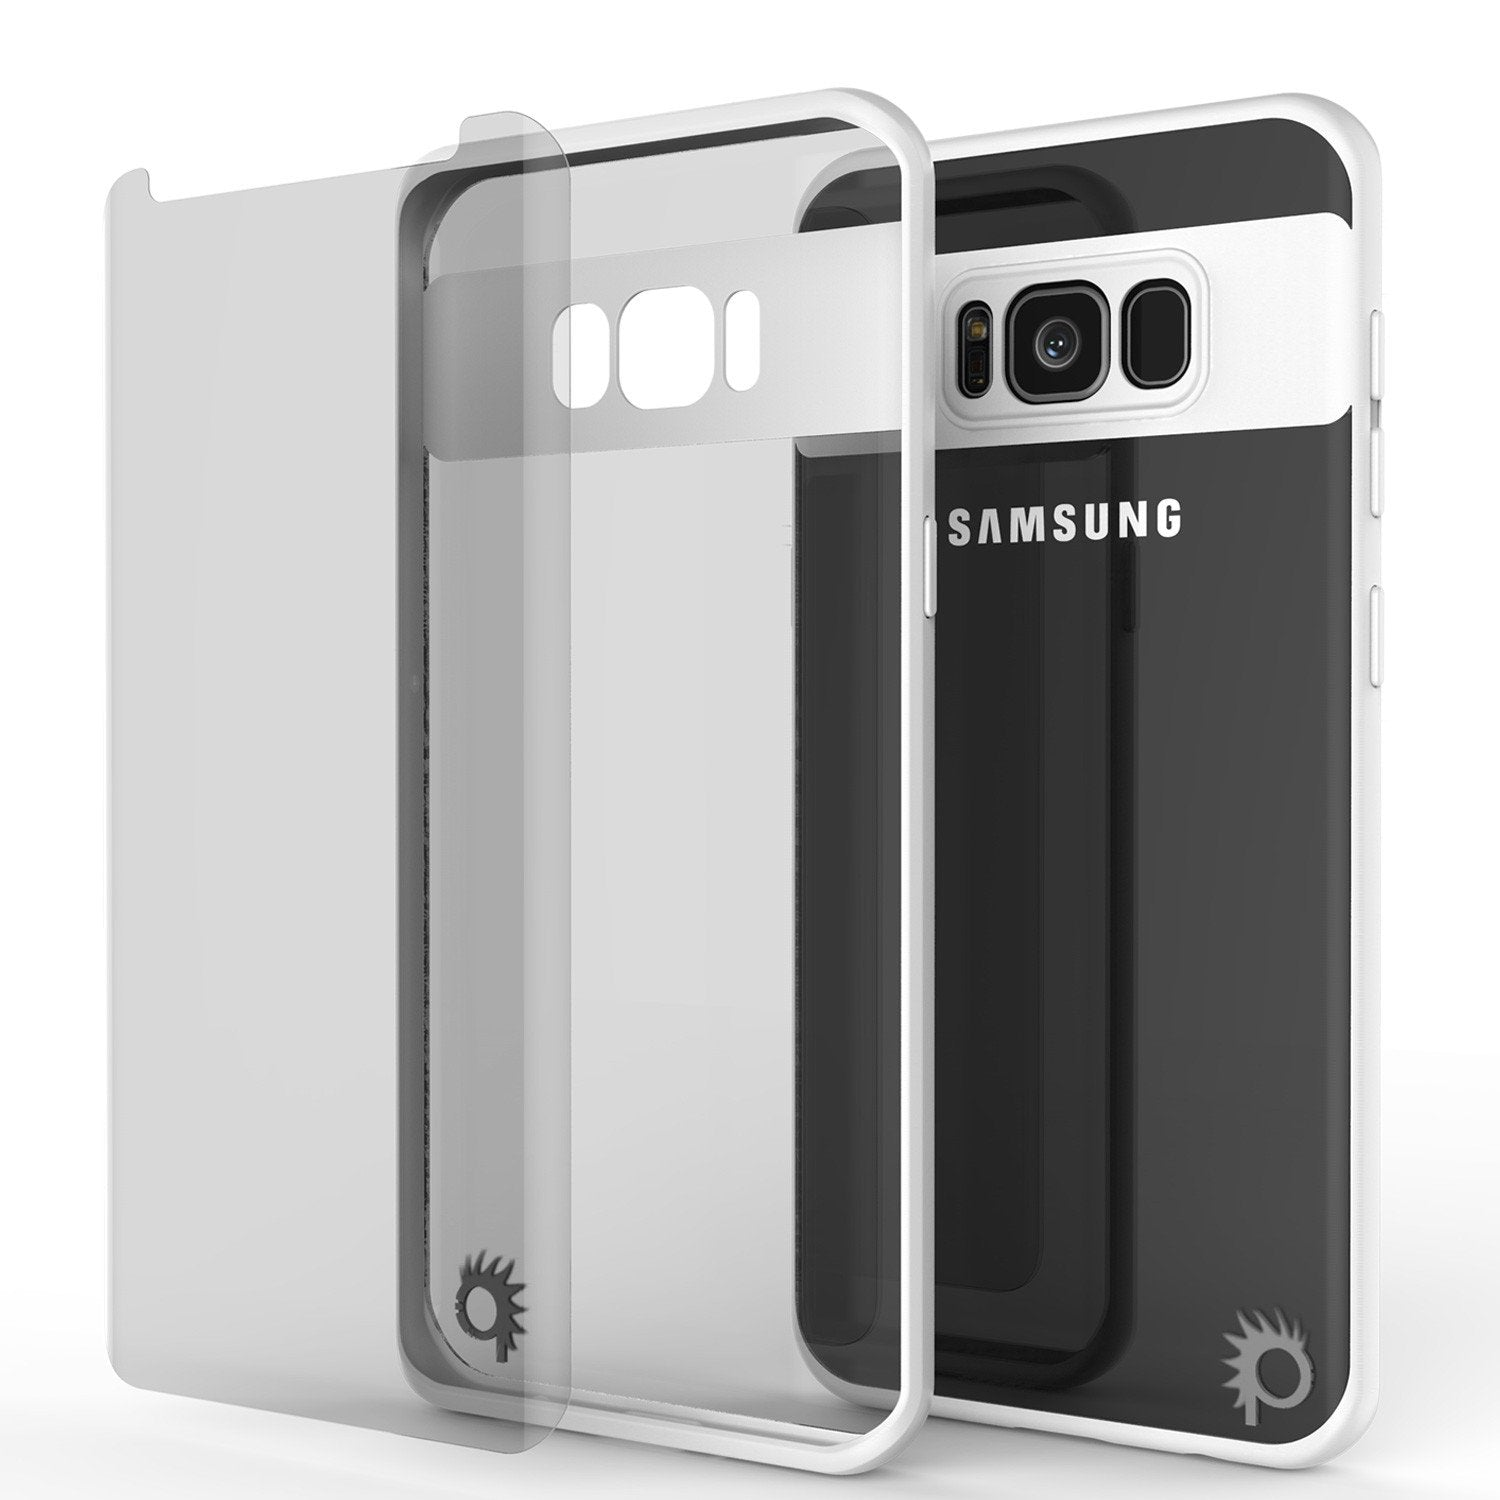 Galaxy S8 Case, Punkcase [MASK Series] [WHITE] Full Body Hybrid Dual Layer TPU Cover W/ Protective PUNKSHIELD Screen Protector